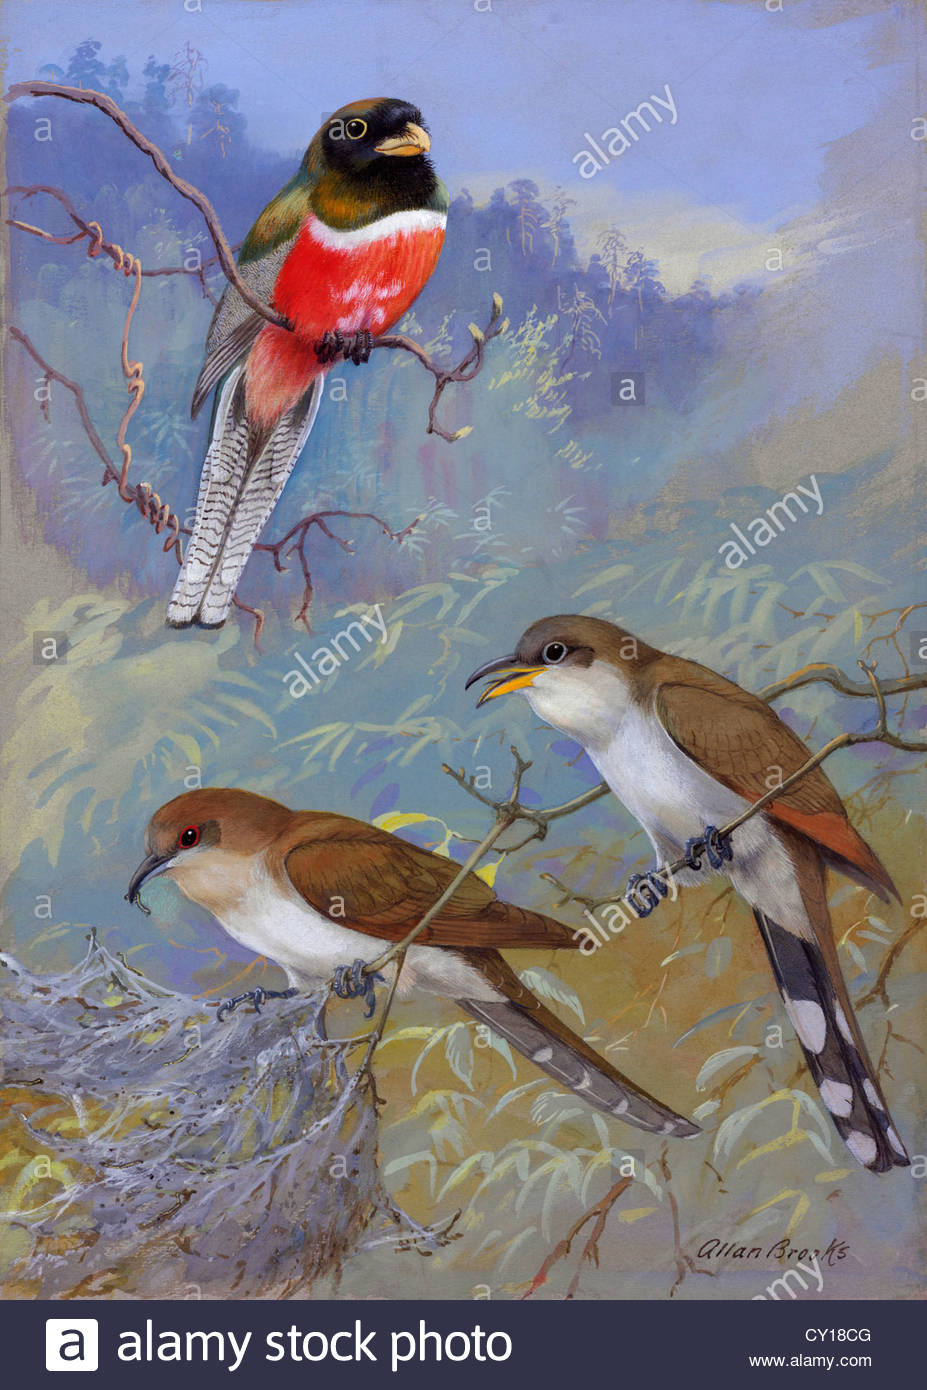 A painting of two species of cuckoo and a coppery-tailed trogon. - Stock Image